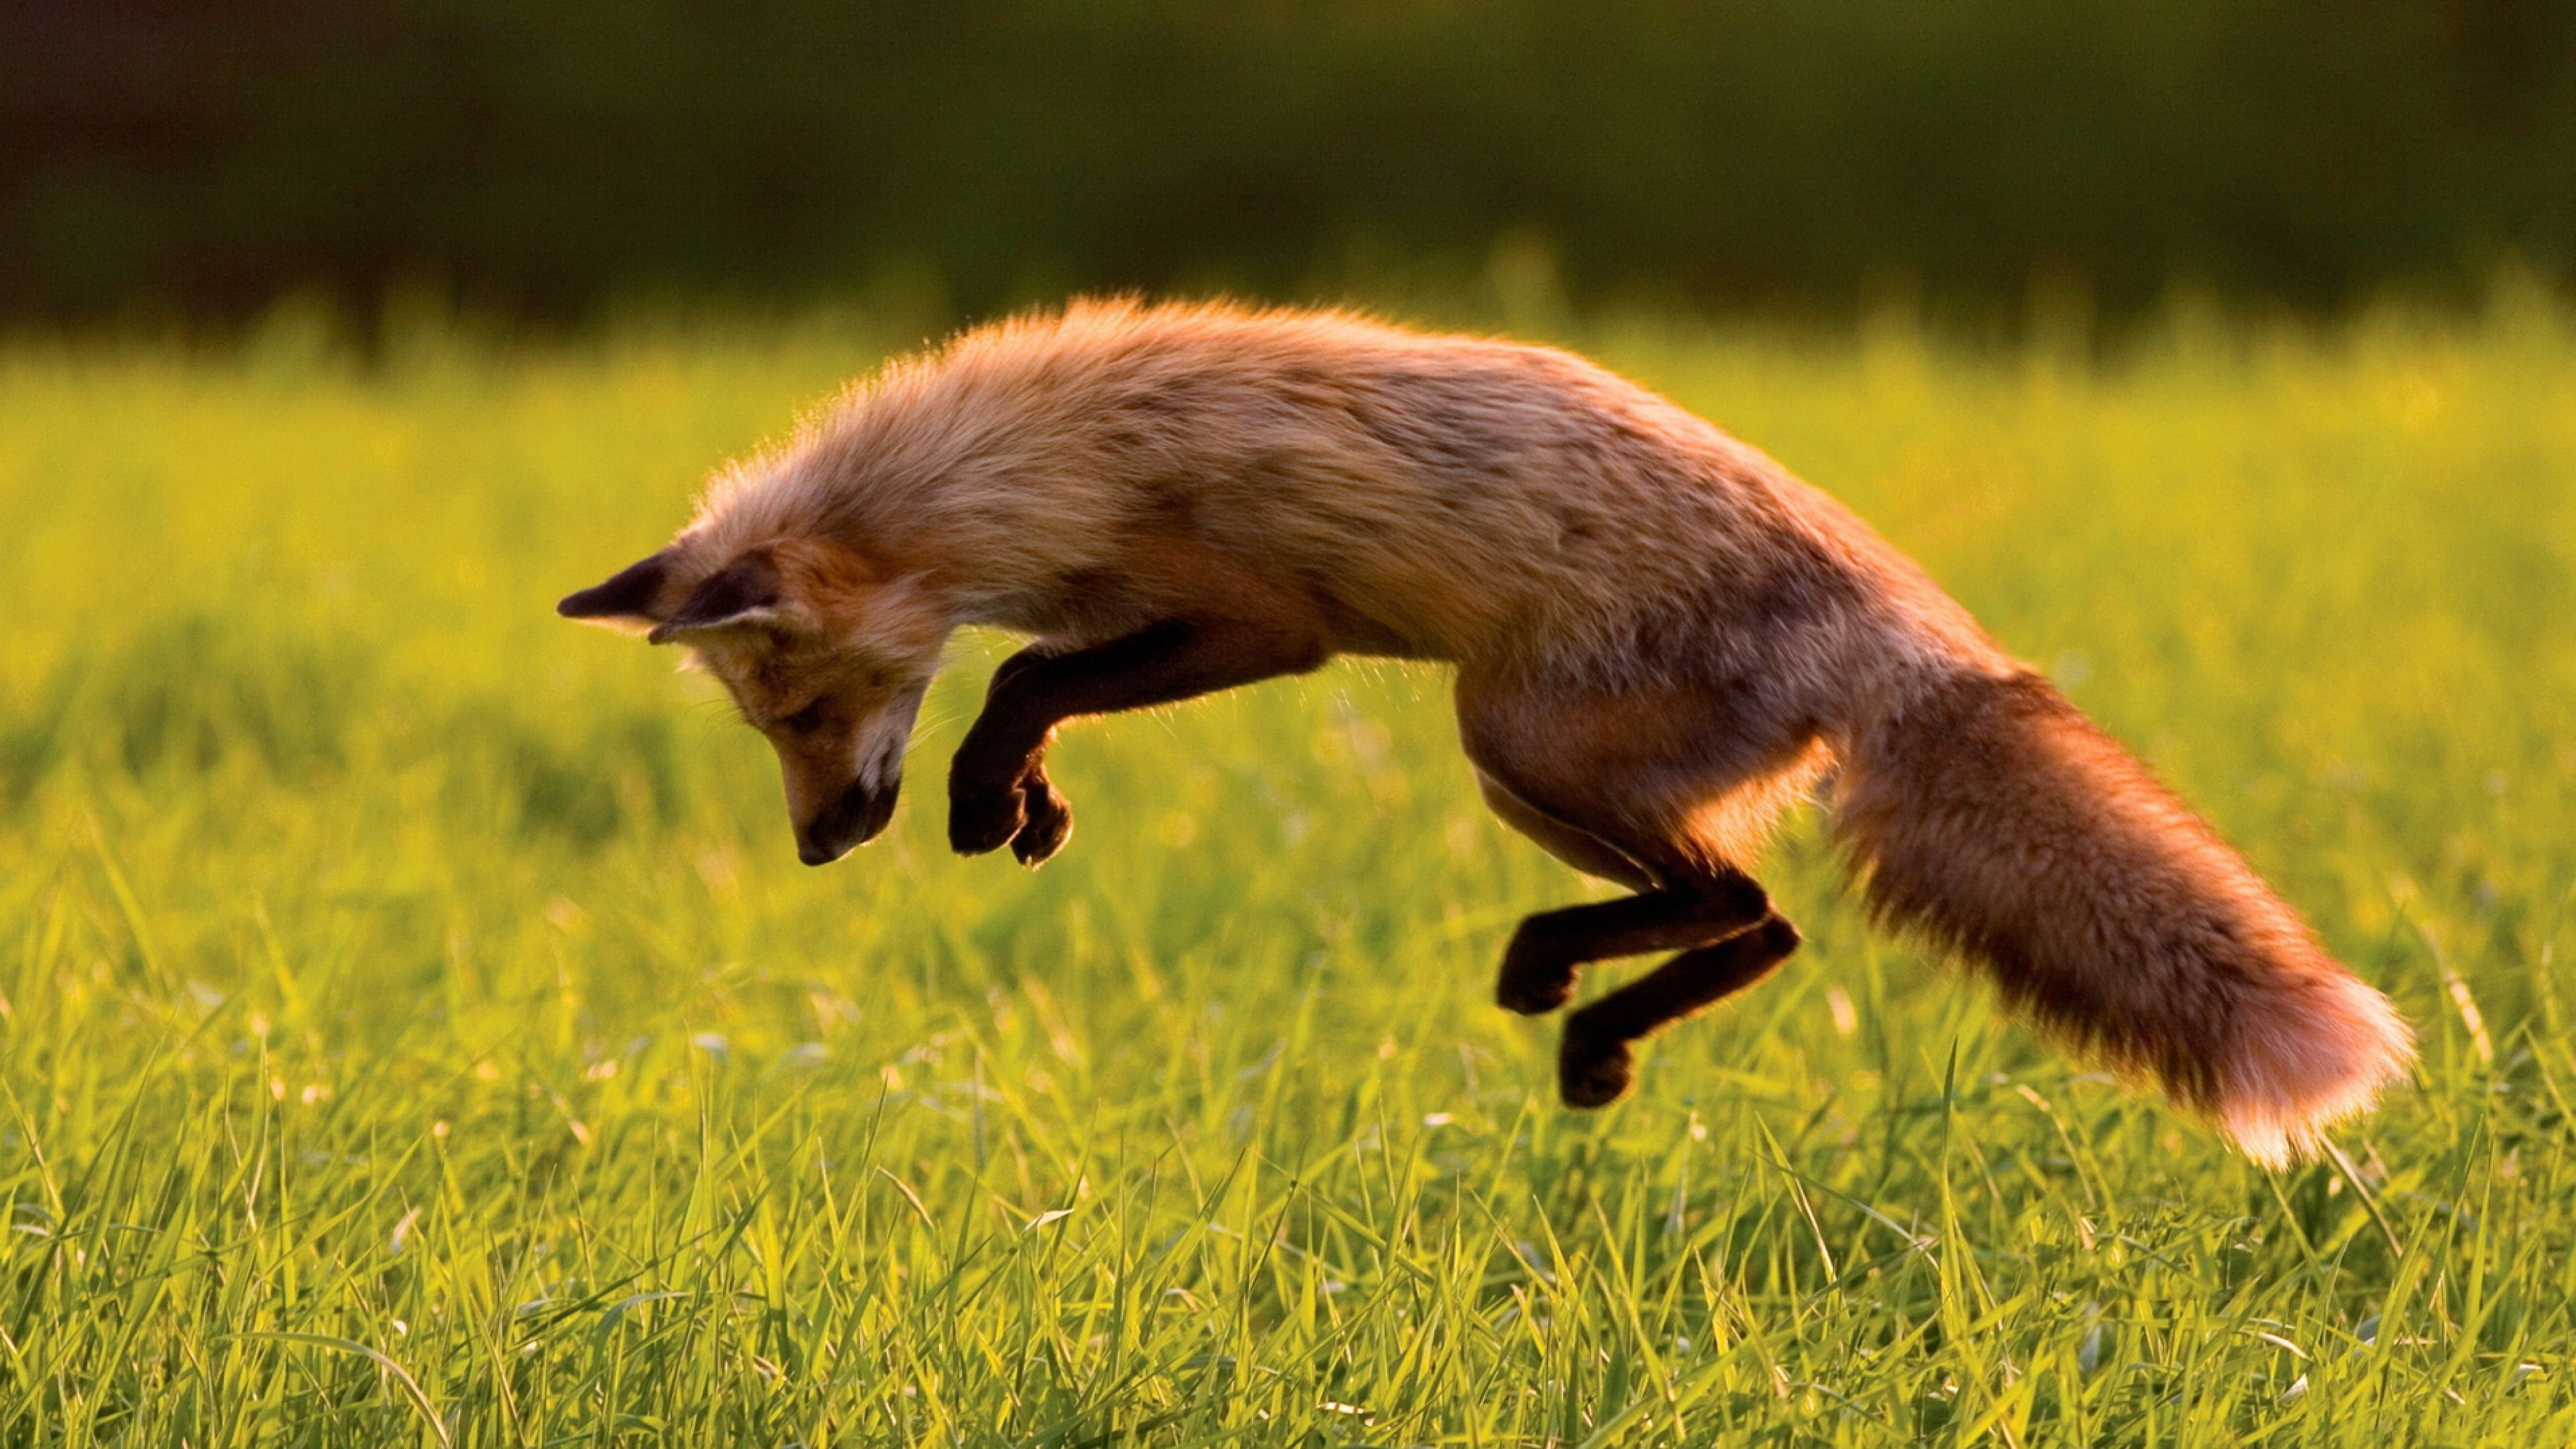 Download Jumping Fox Wallpaper Free Wallpapers Jumping fox